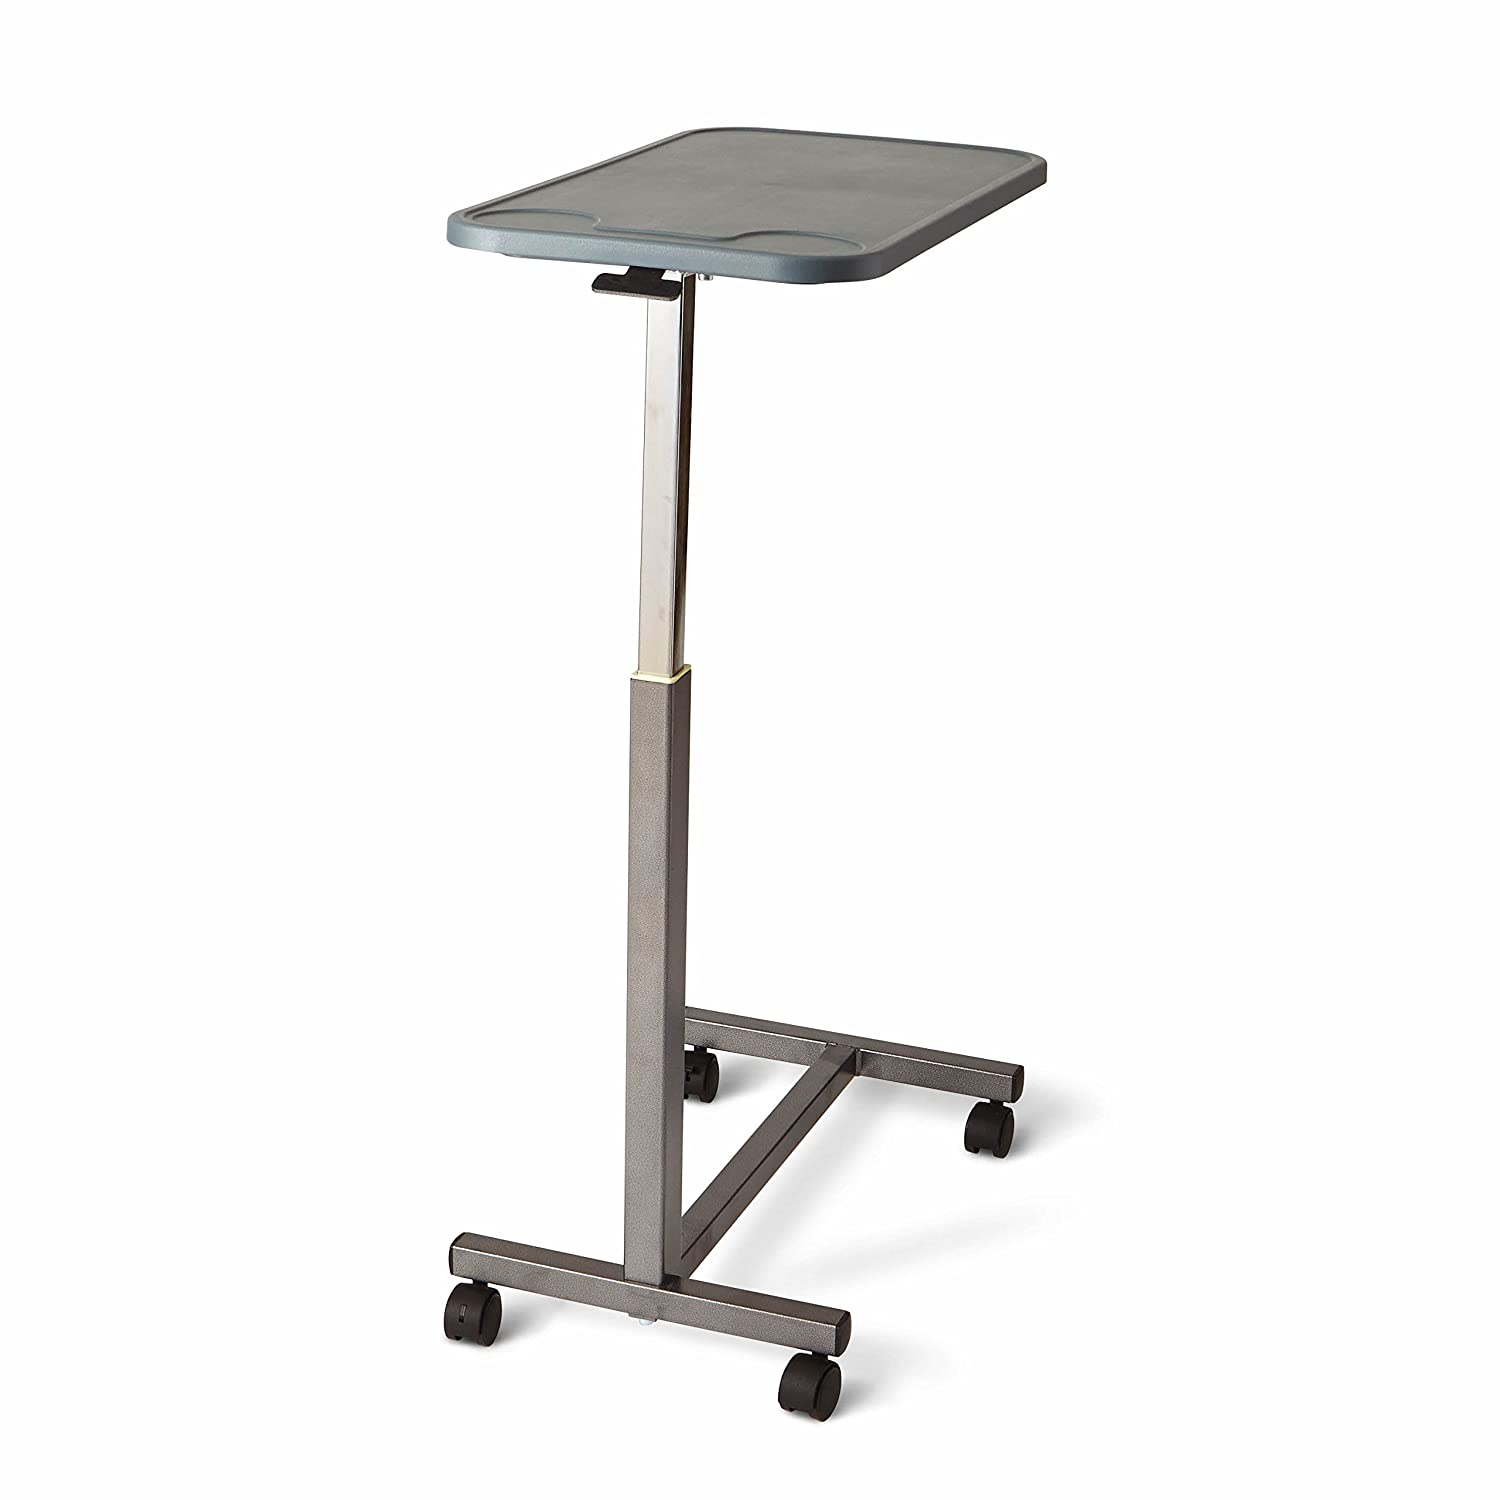 Medline - n Adjustable Overbed Bedside Table with Wheels, Great for Hospital Use or At Home as Bed Tray, Composite Table Top: Industrial & Scientific